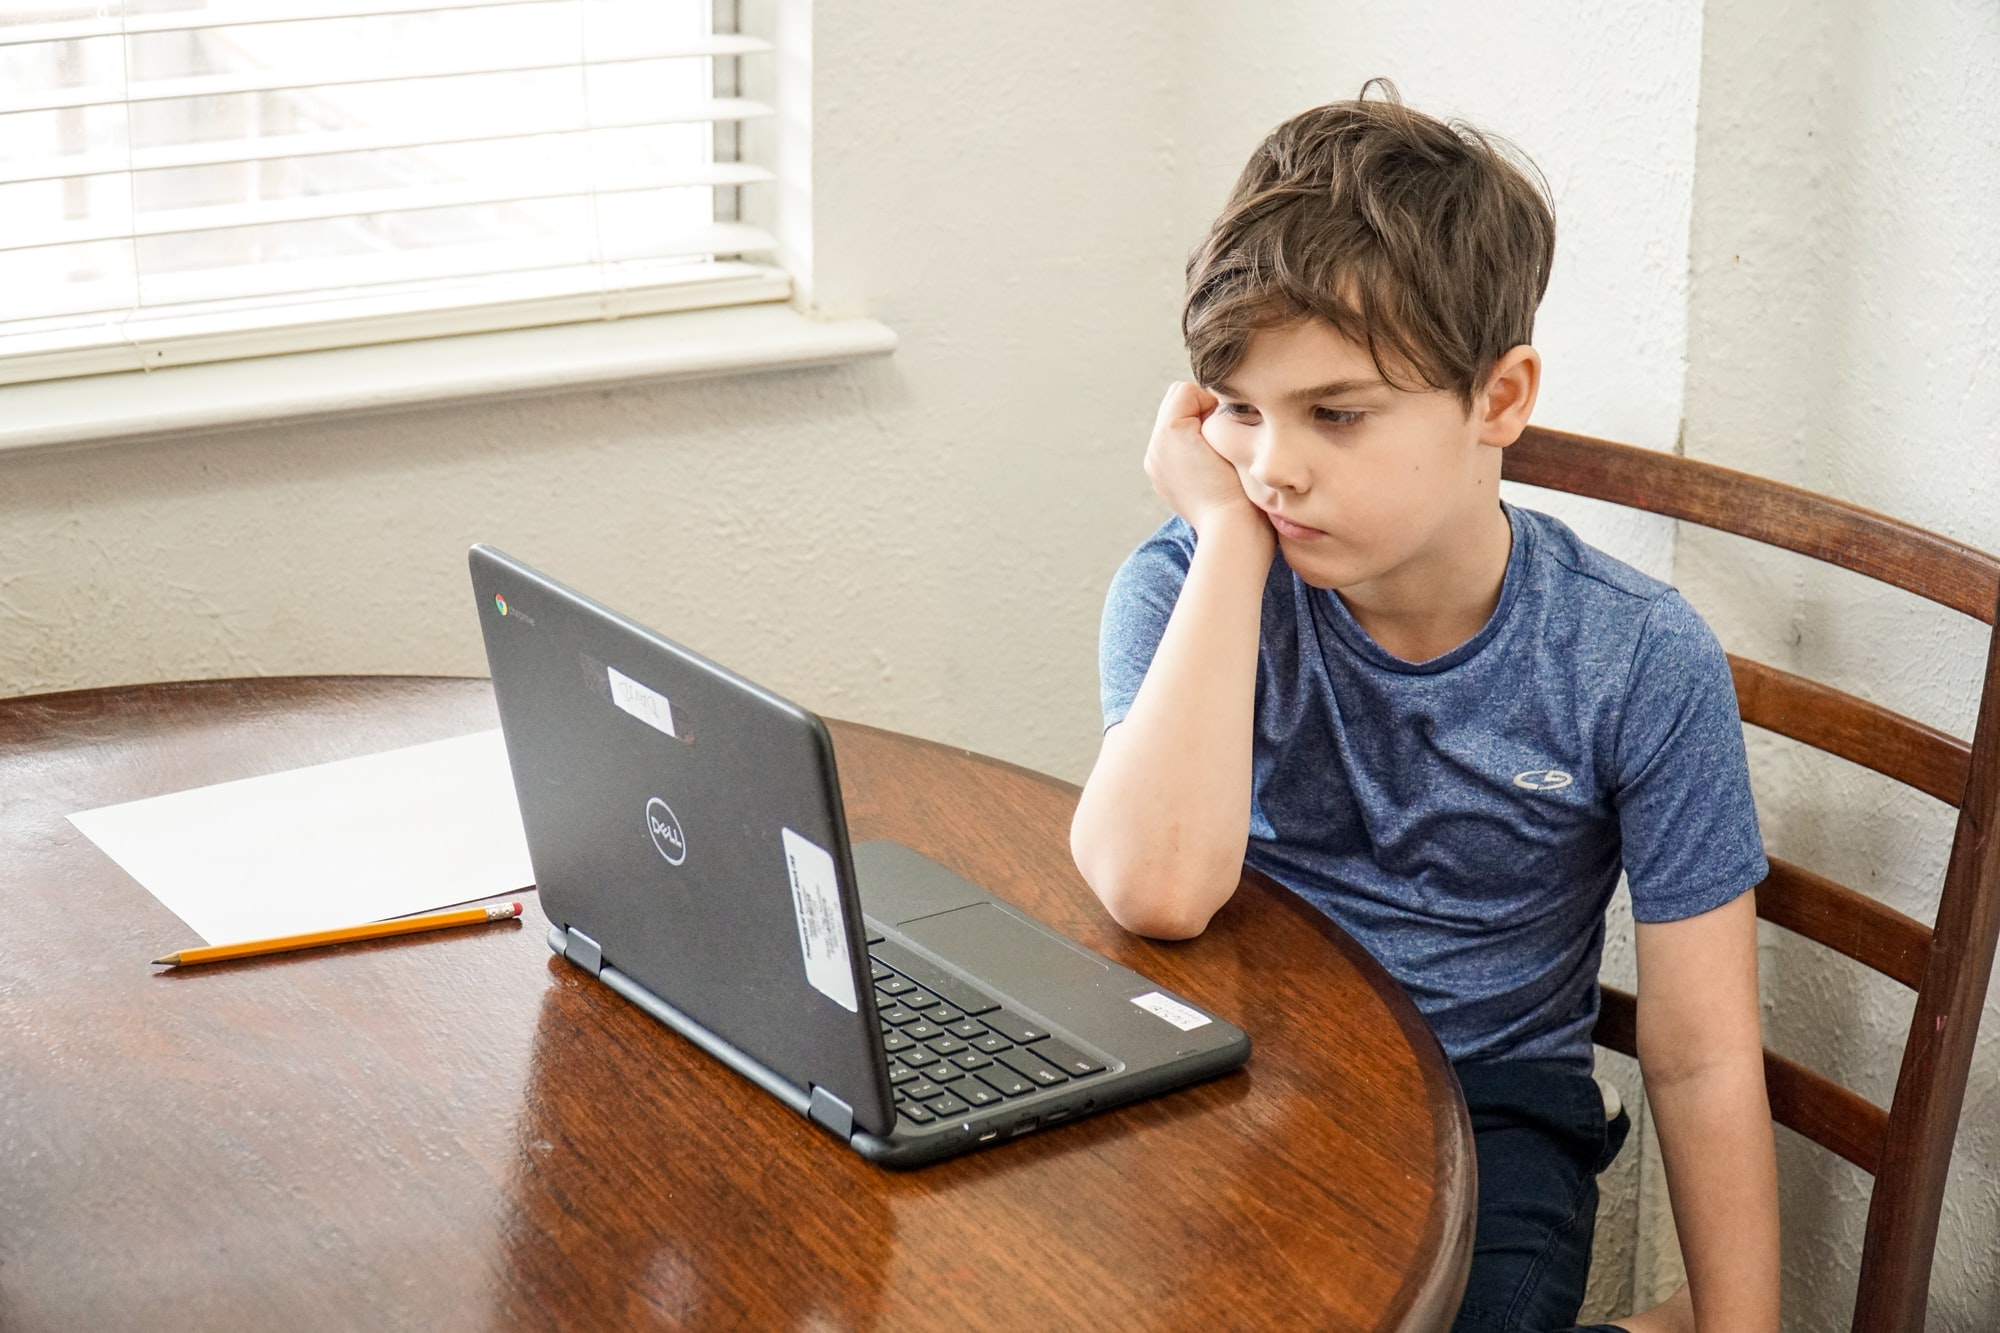 Emotional Consequences of Online Learning